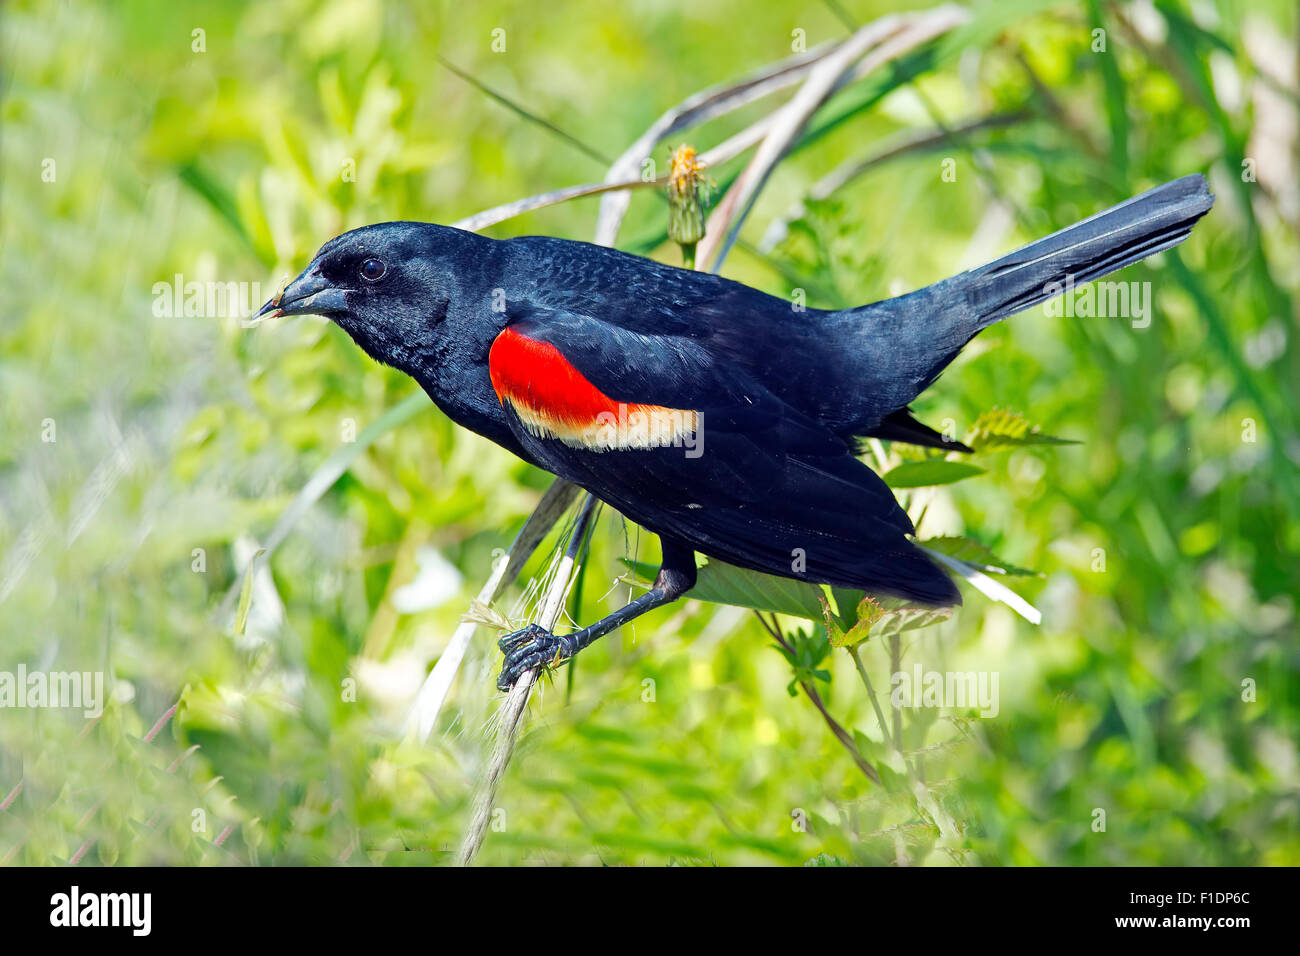 Male Red-winged Blackbird on a branch - Stock Image